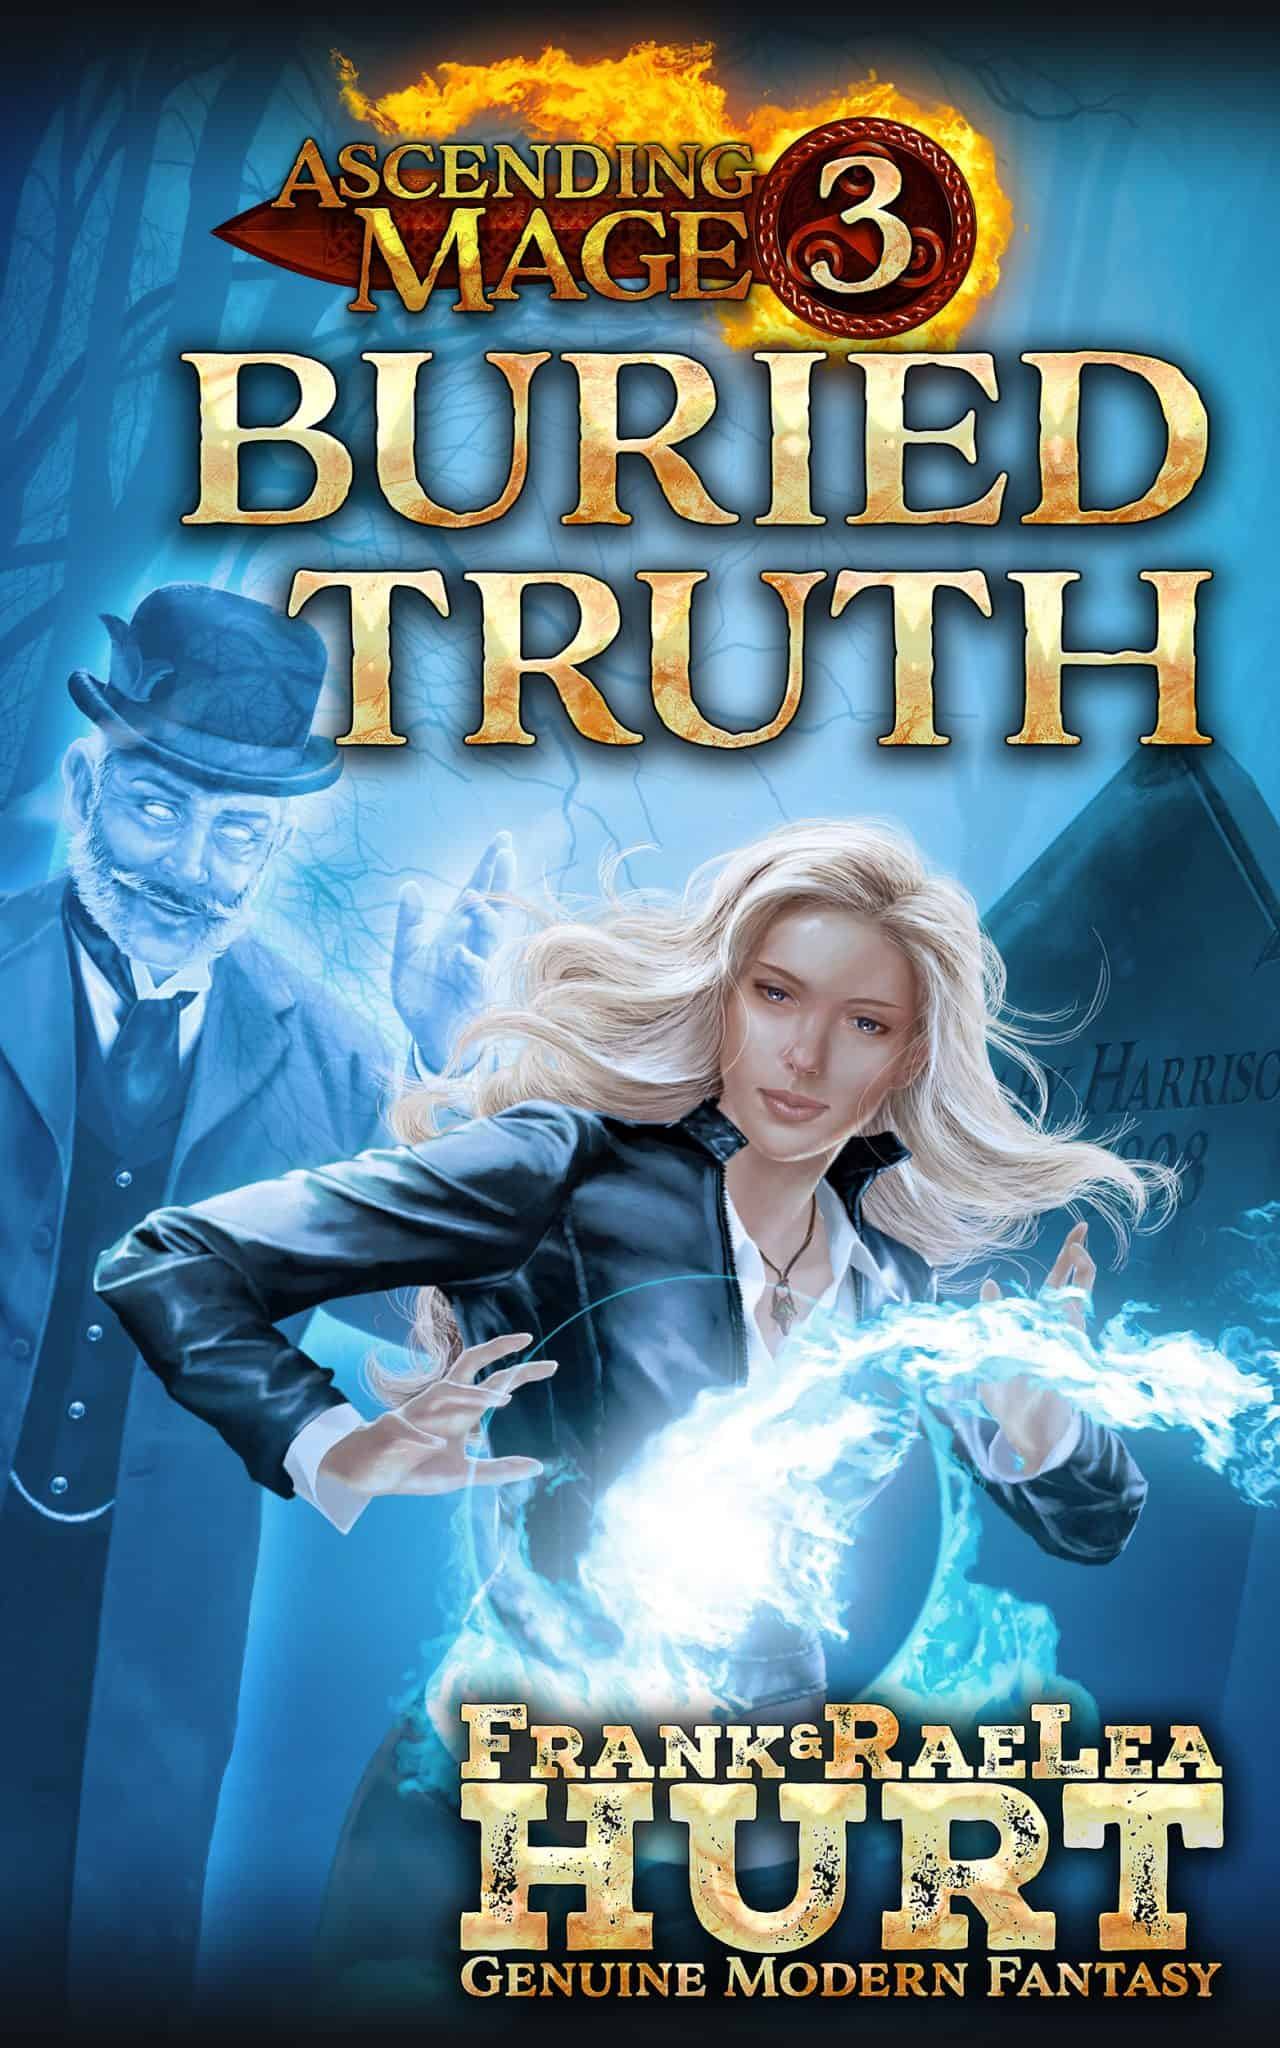 Ascending Mage 3: Buried Truth